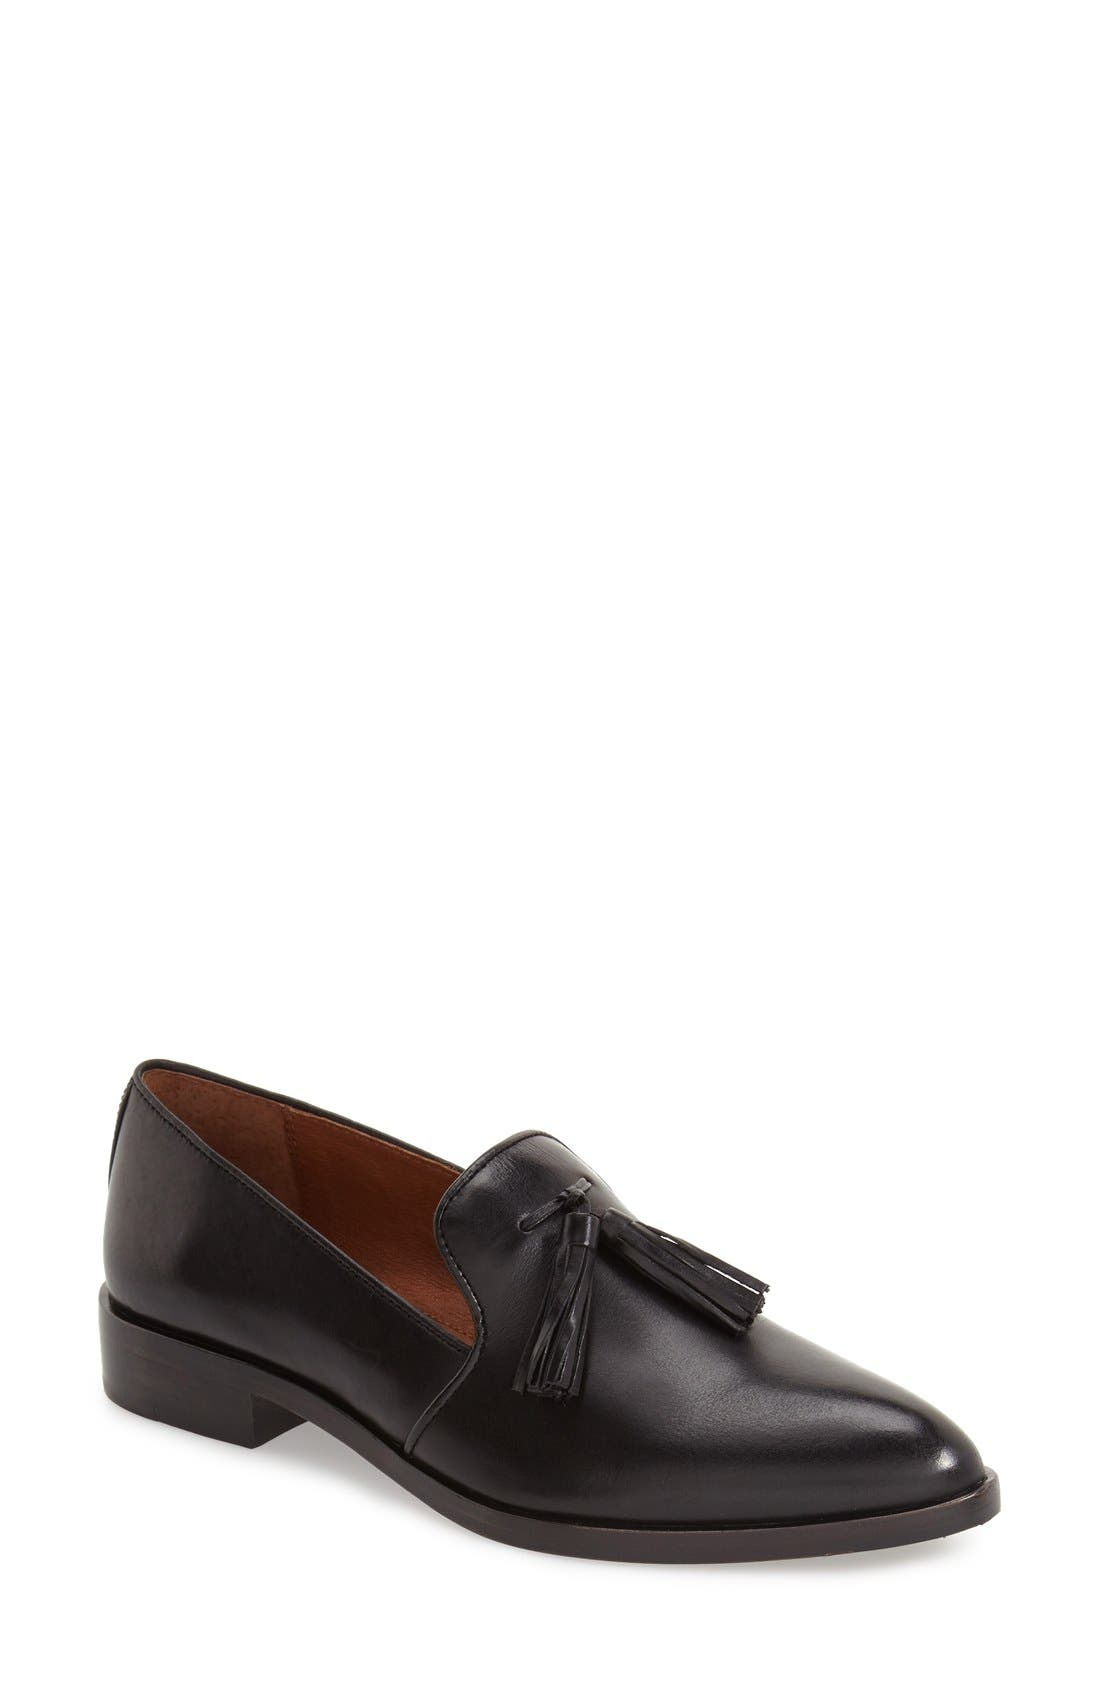 'Erica' Venetian Loafer,                         Main,                         color,